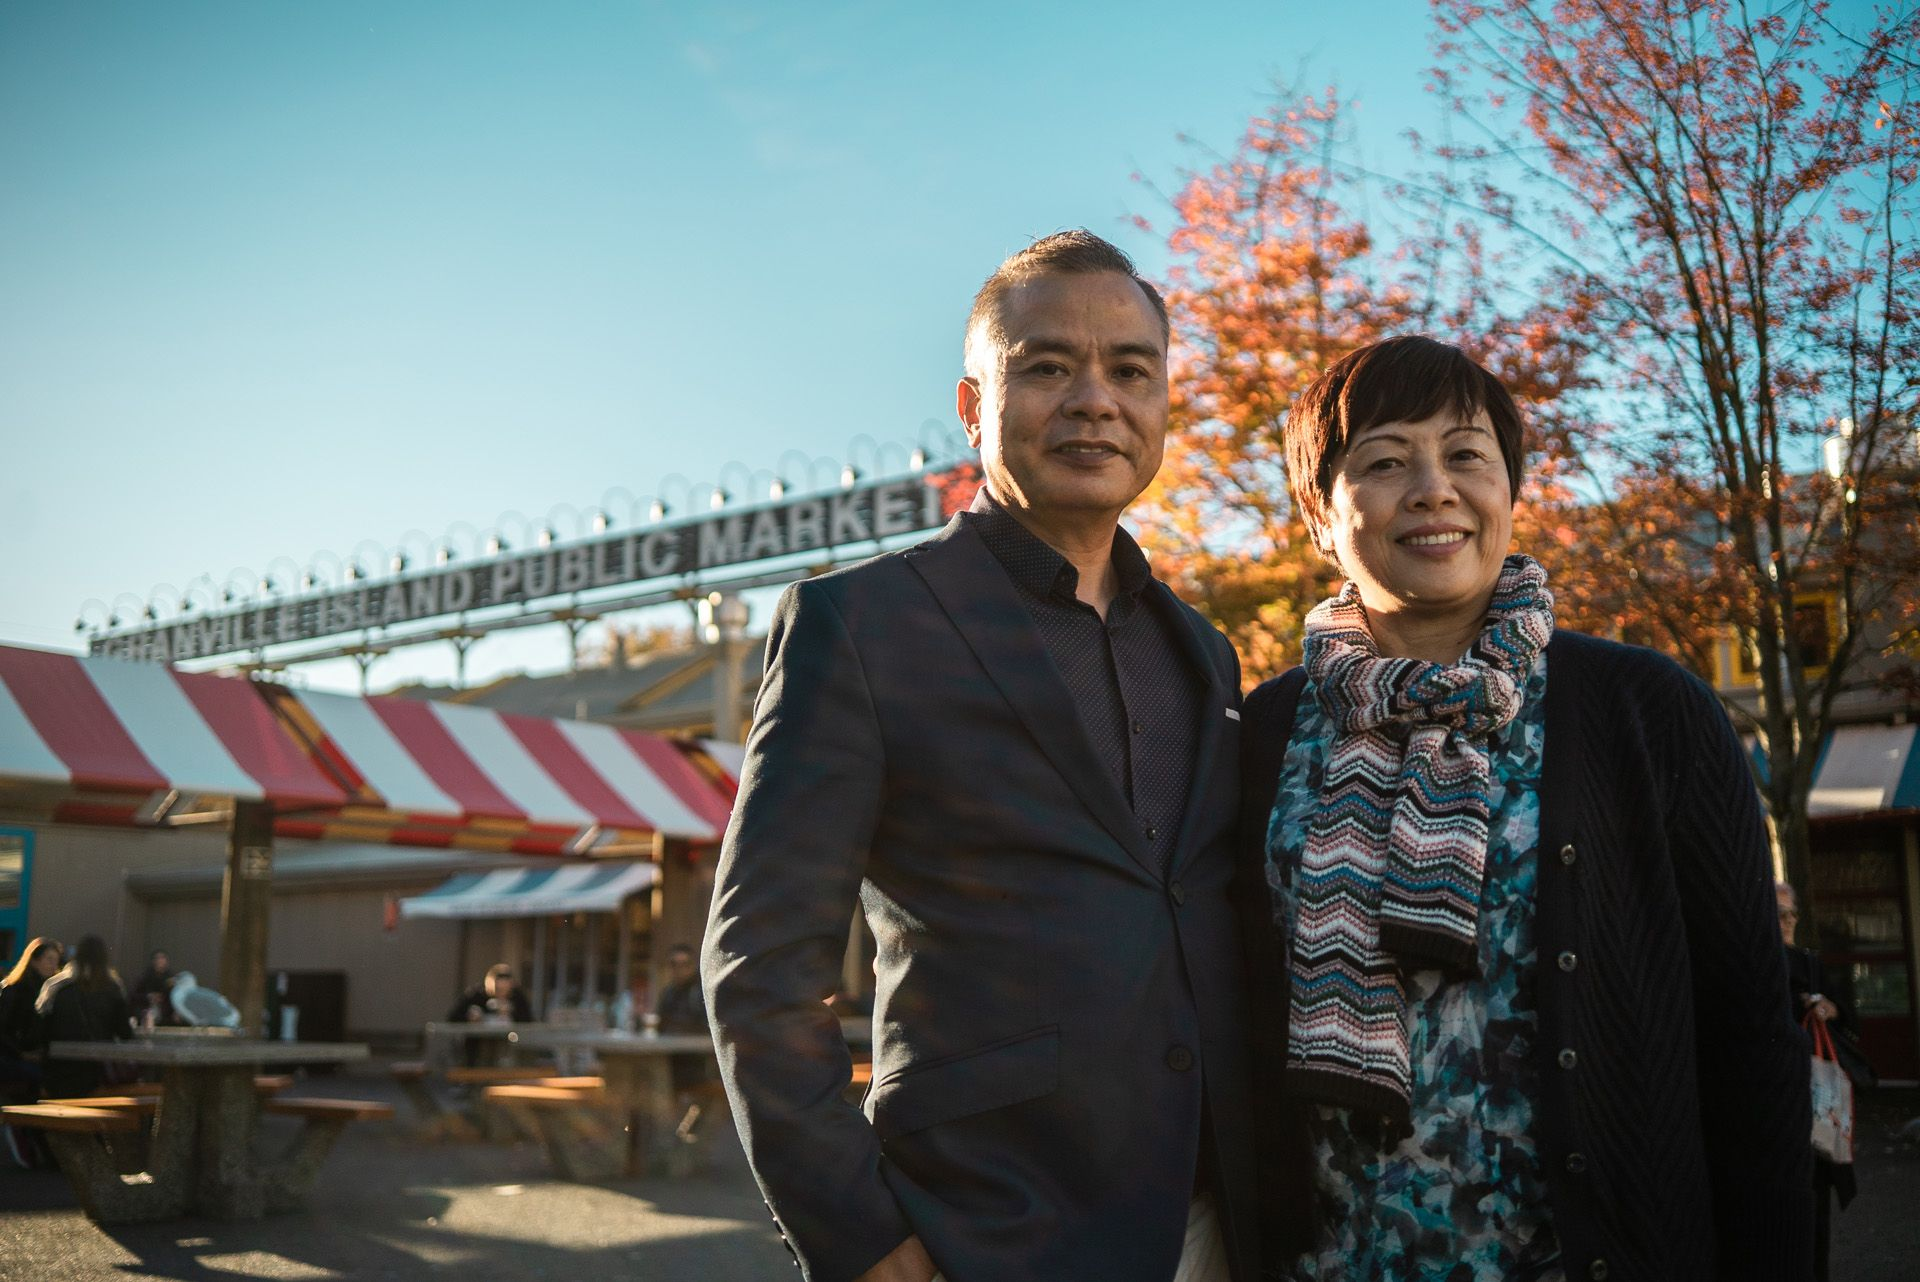 asian couple posing in front of public market in autumn by Bruno Florin for BDC Beyond Business with Cossette